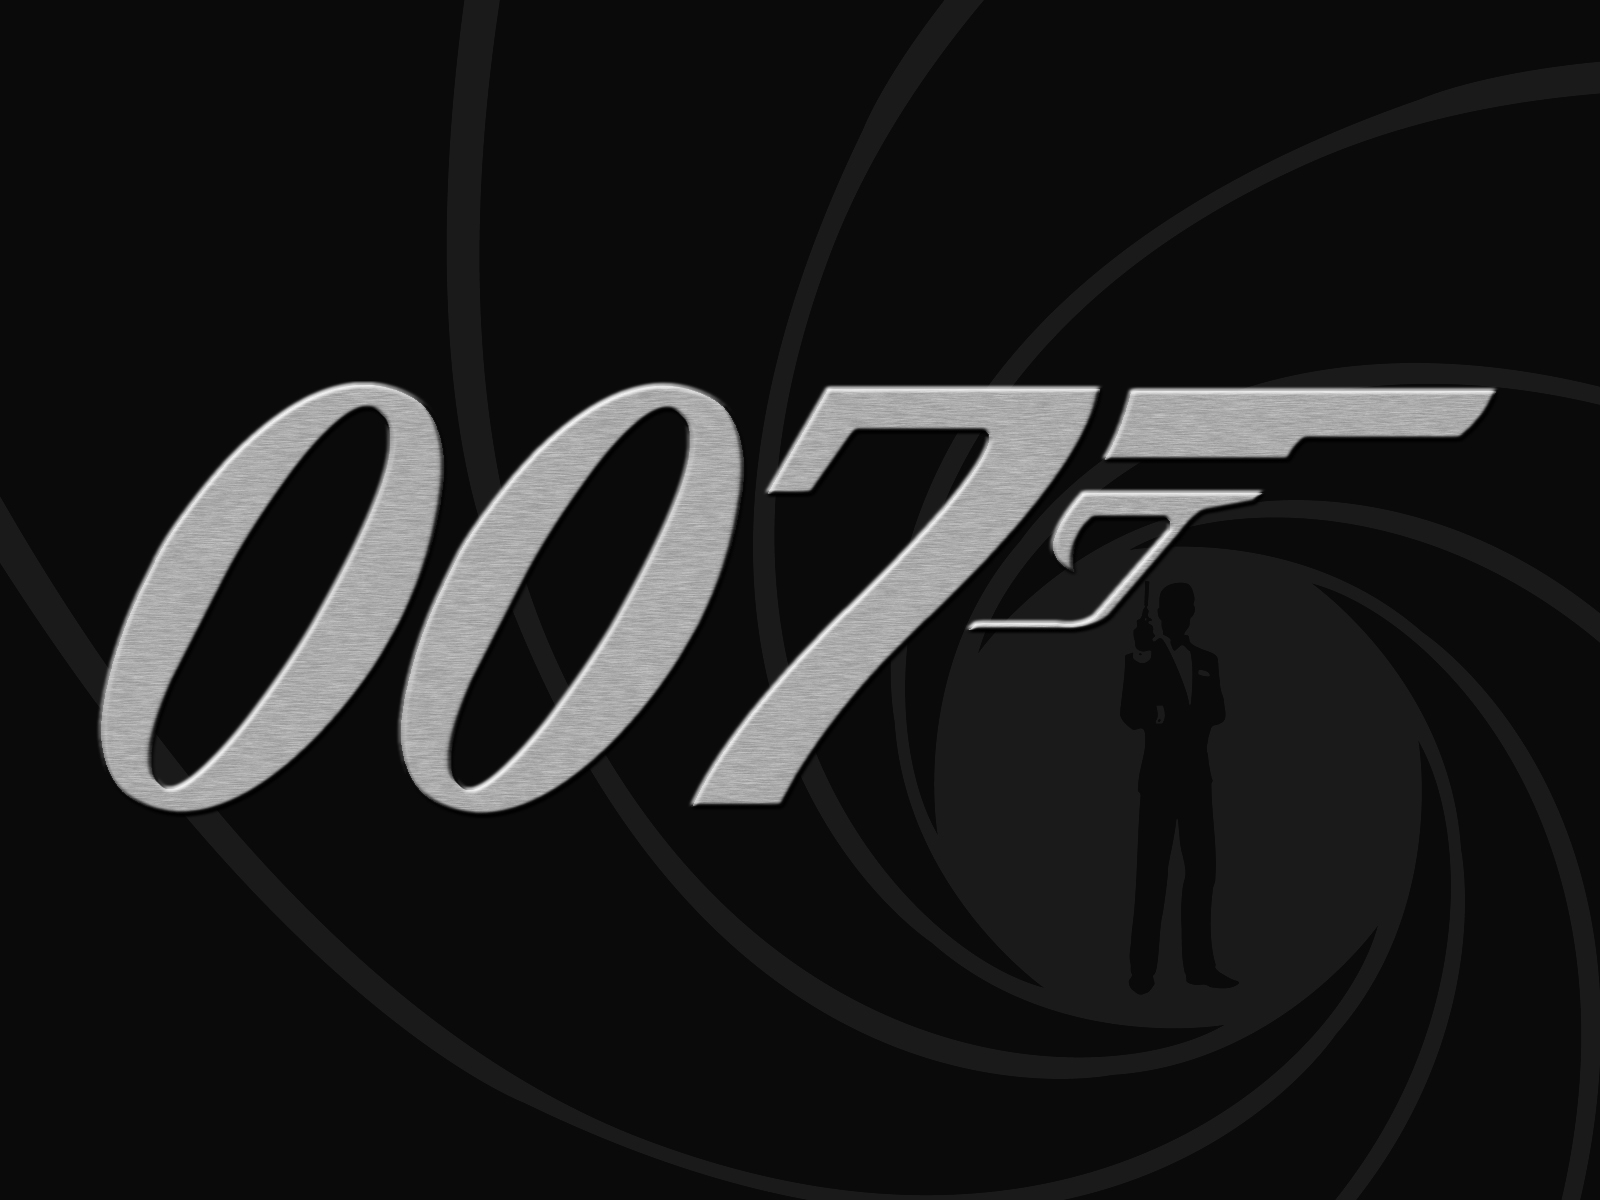 James Bond How Did The World's Most Famous Spy Acquire